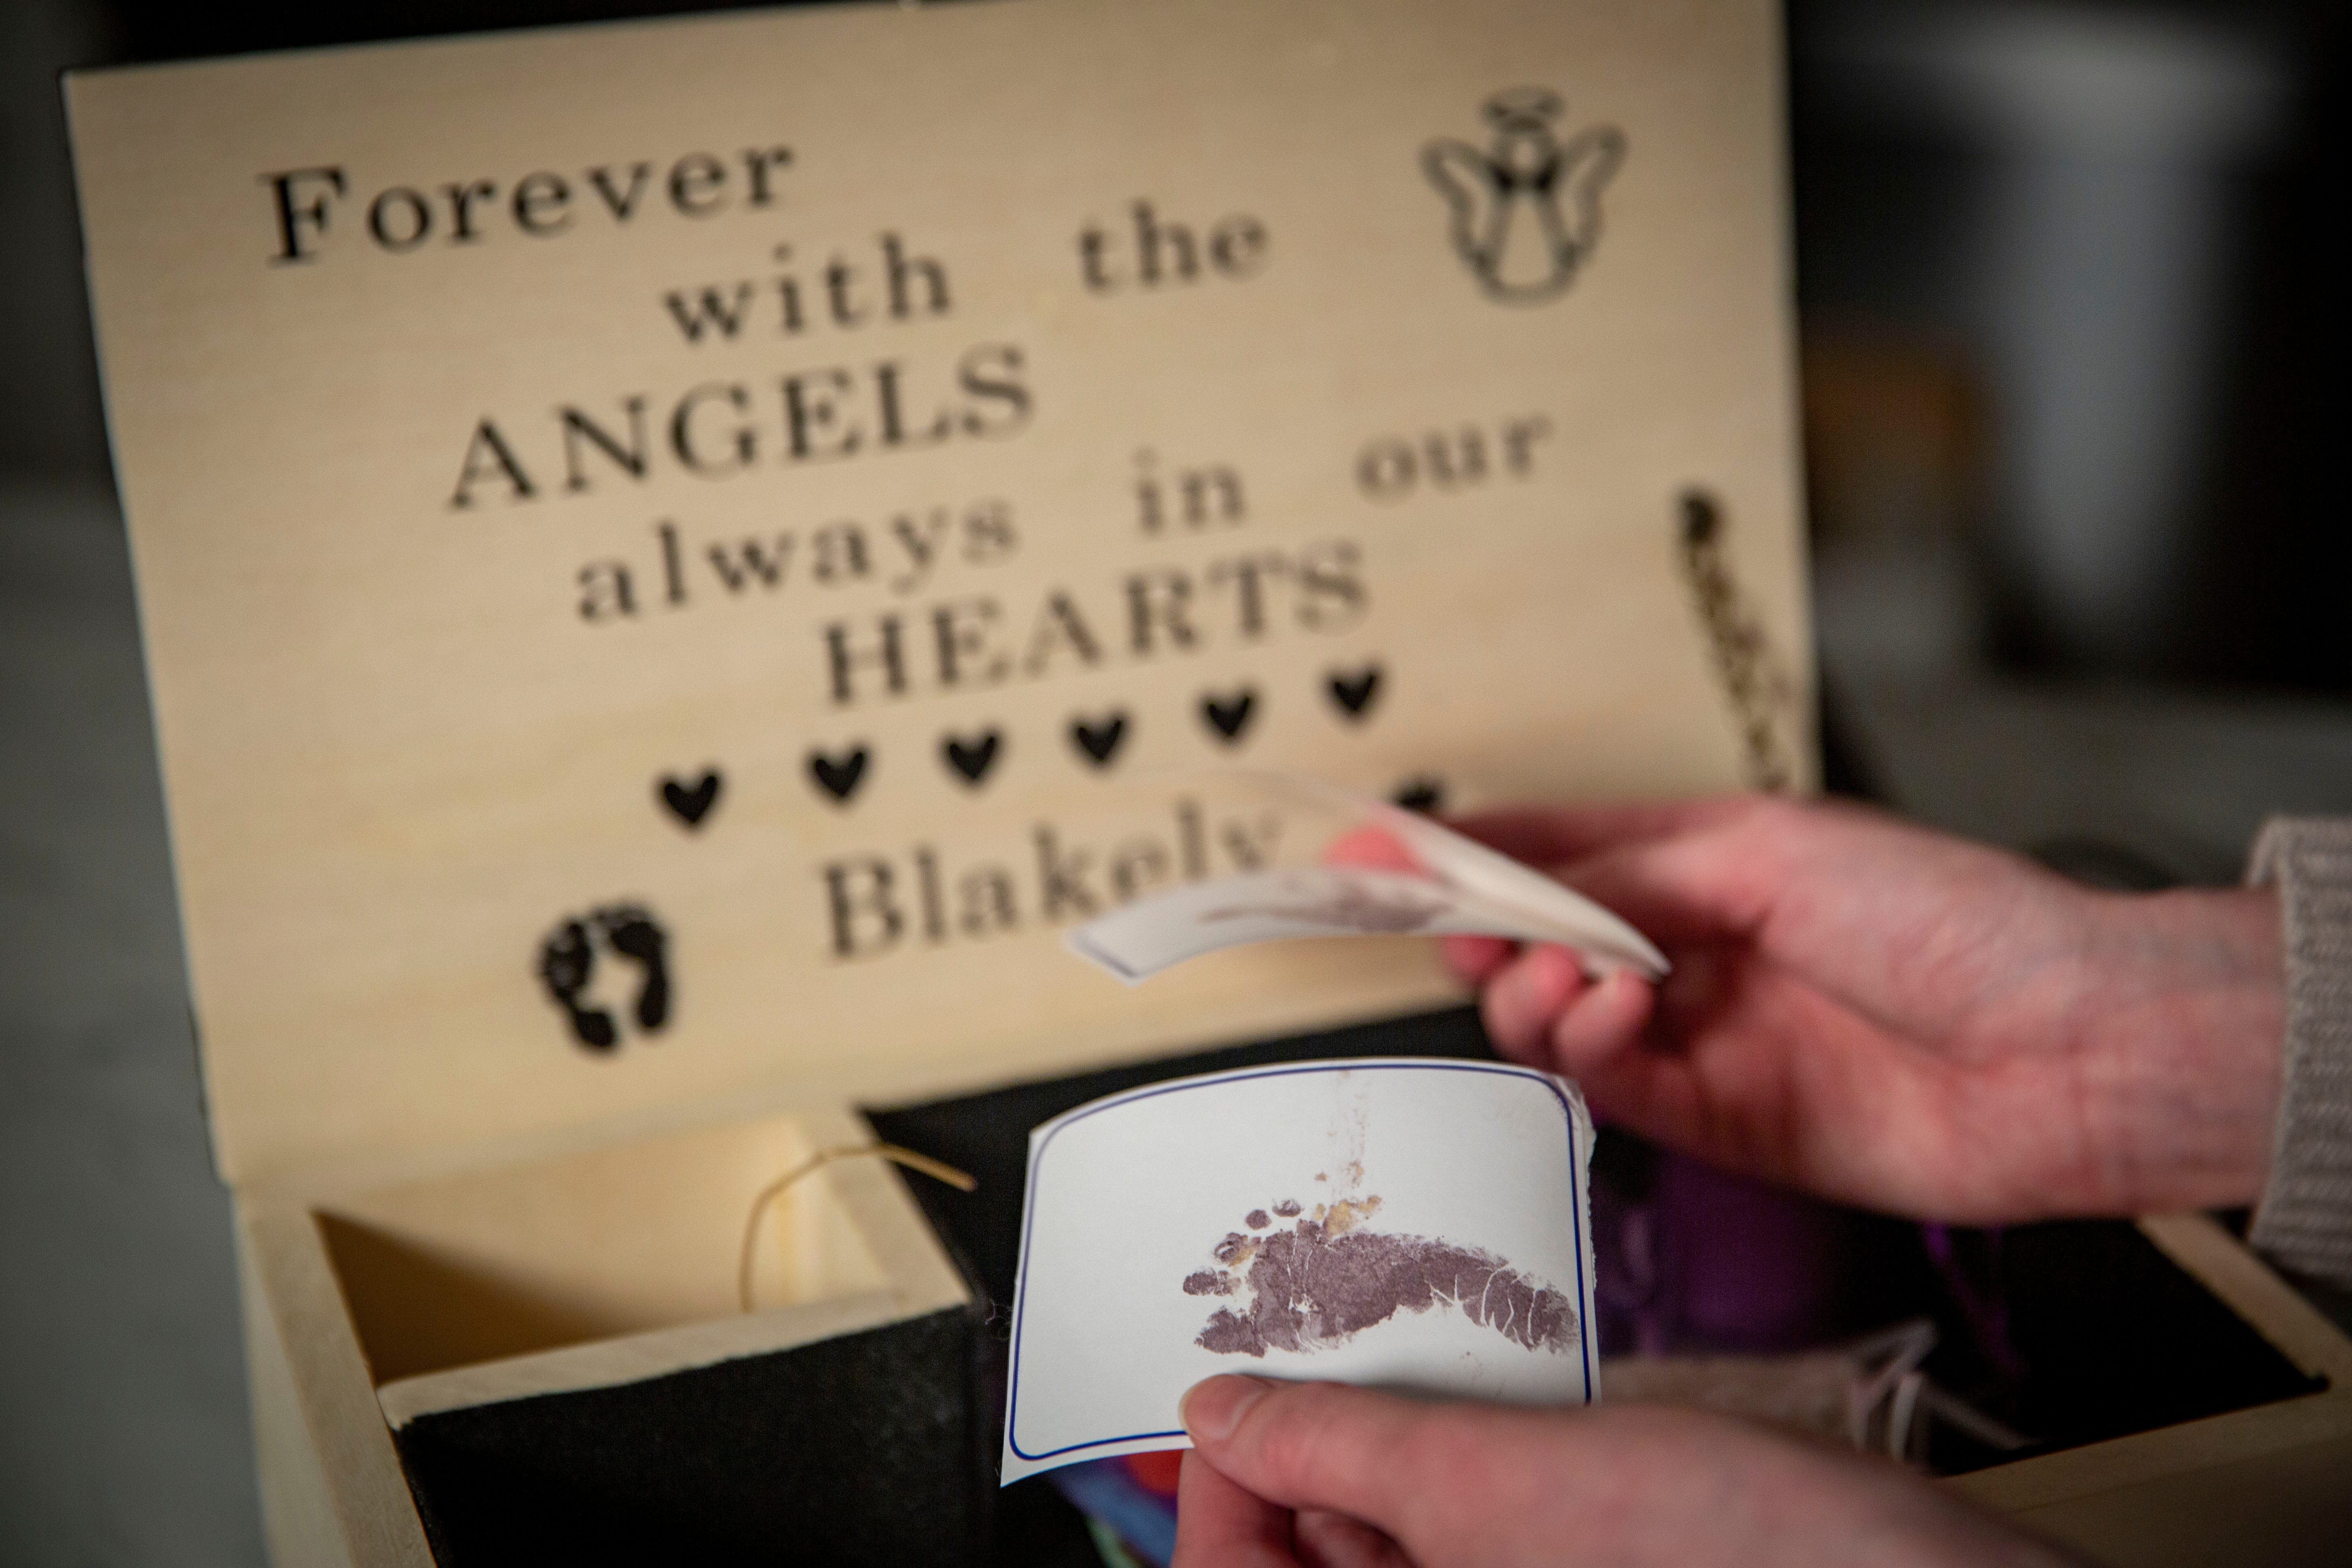 McKenzie Harreld looks at her daughter Blakely's footprint, which she keeps with other mementos in a handcrafted box her dad made.